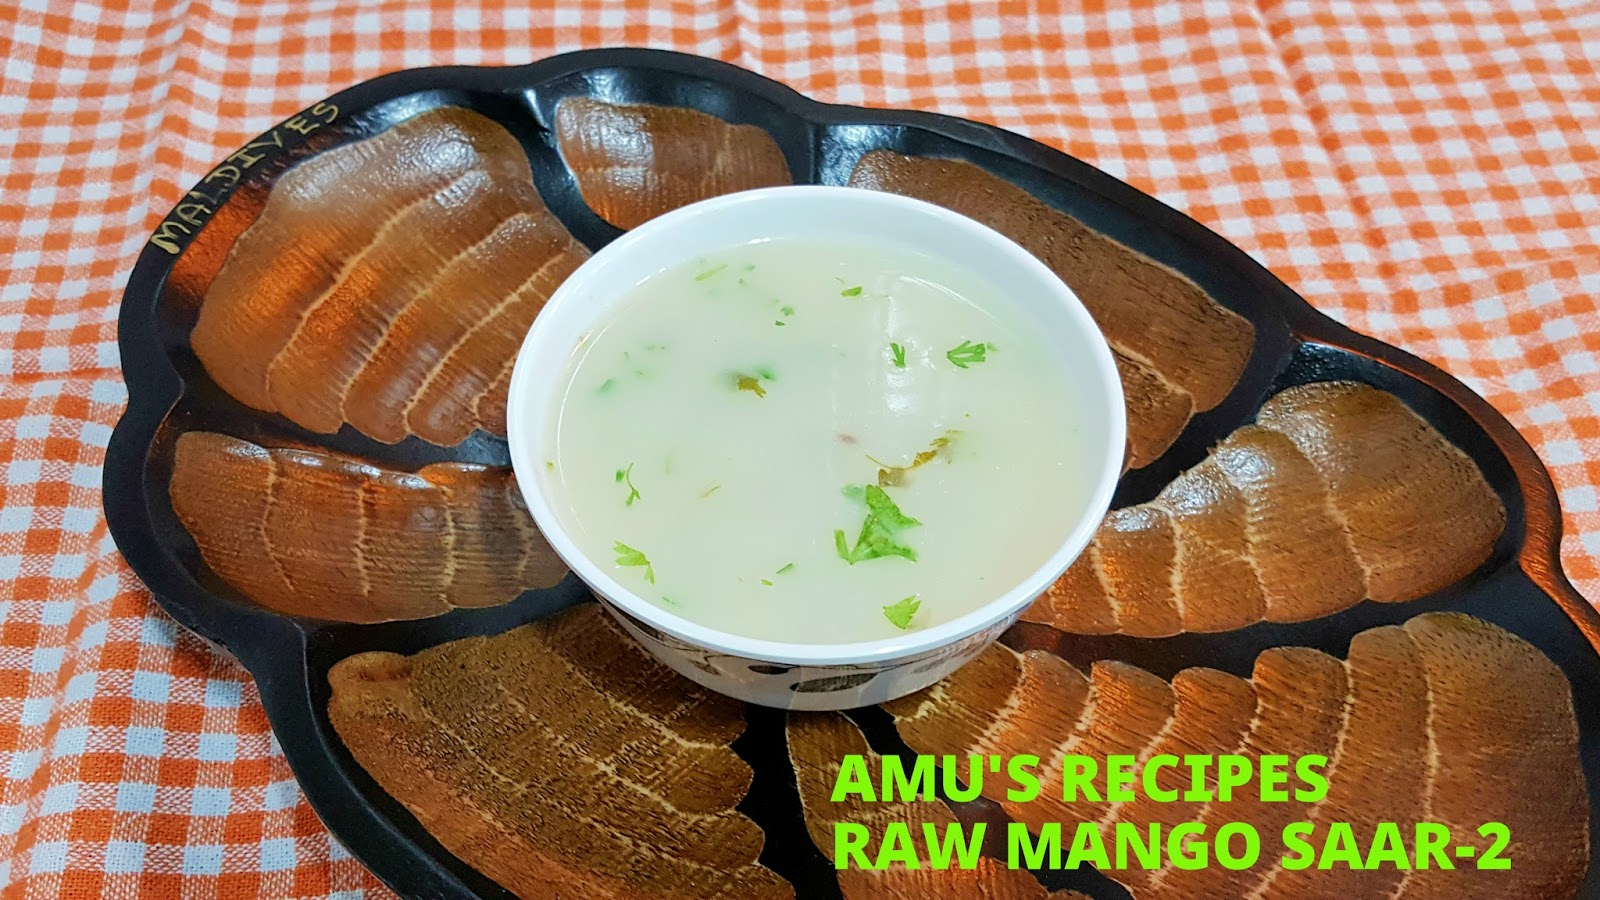 Indian food recipes indian recipes desi food desi recipes roti and rice is the main diet of mahrashrian people and to accompany it various liquid curries like varan forumfinder Choice Image